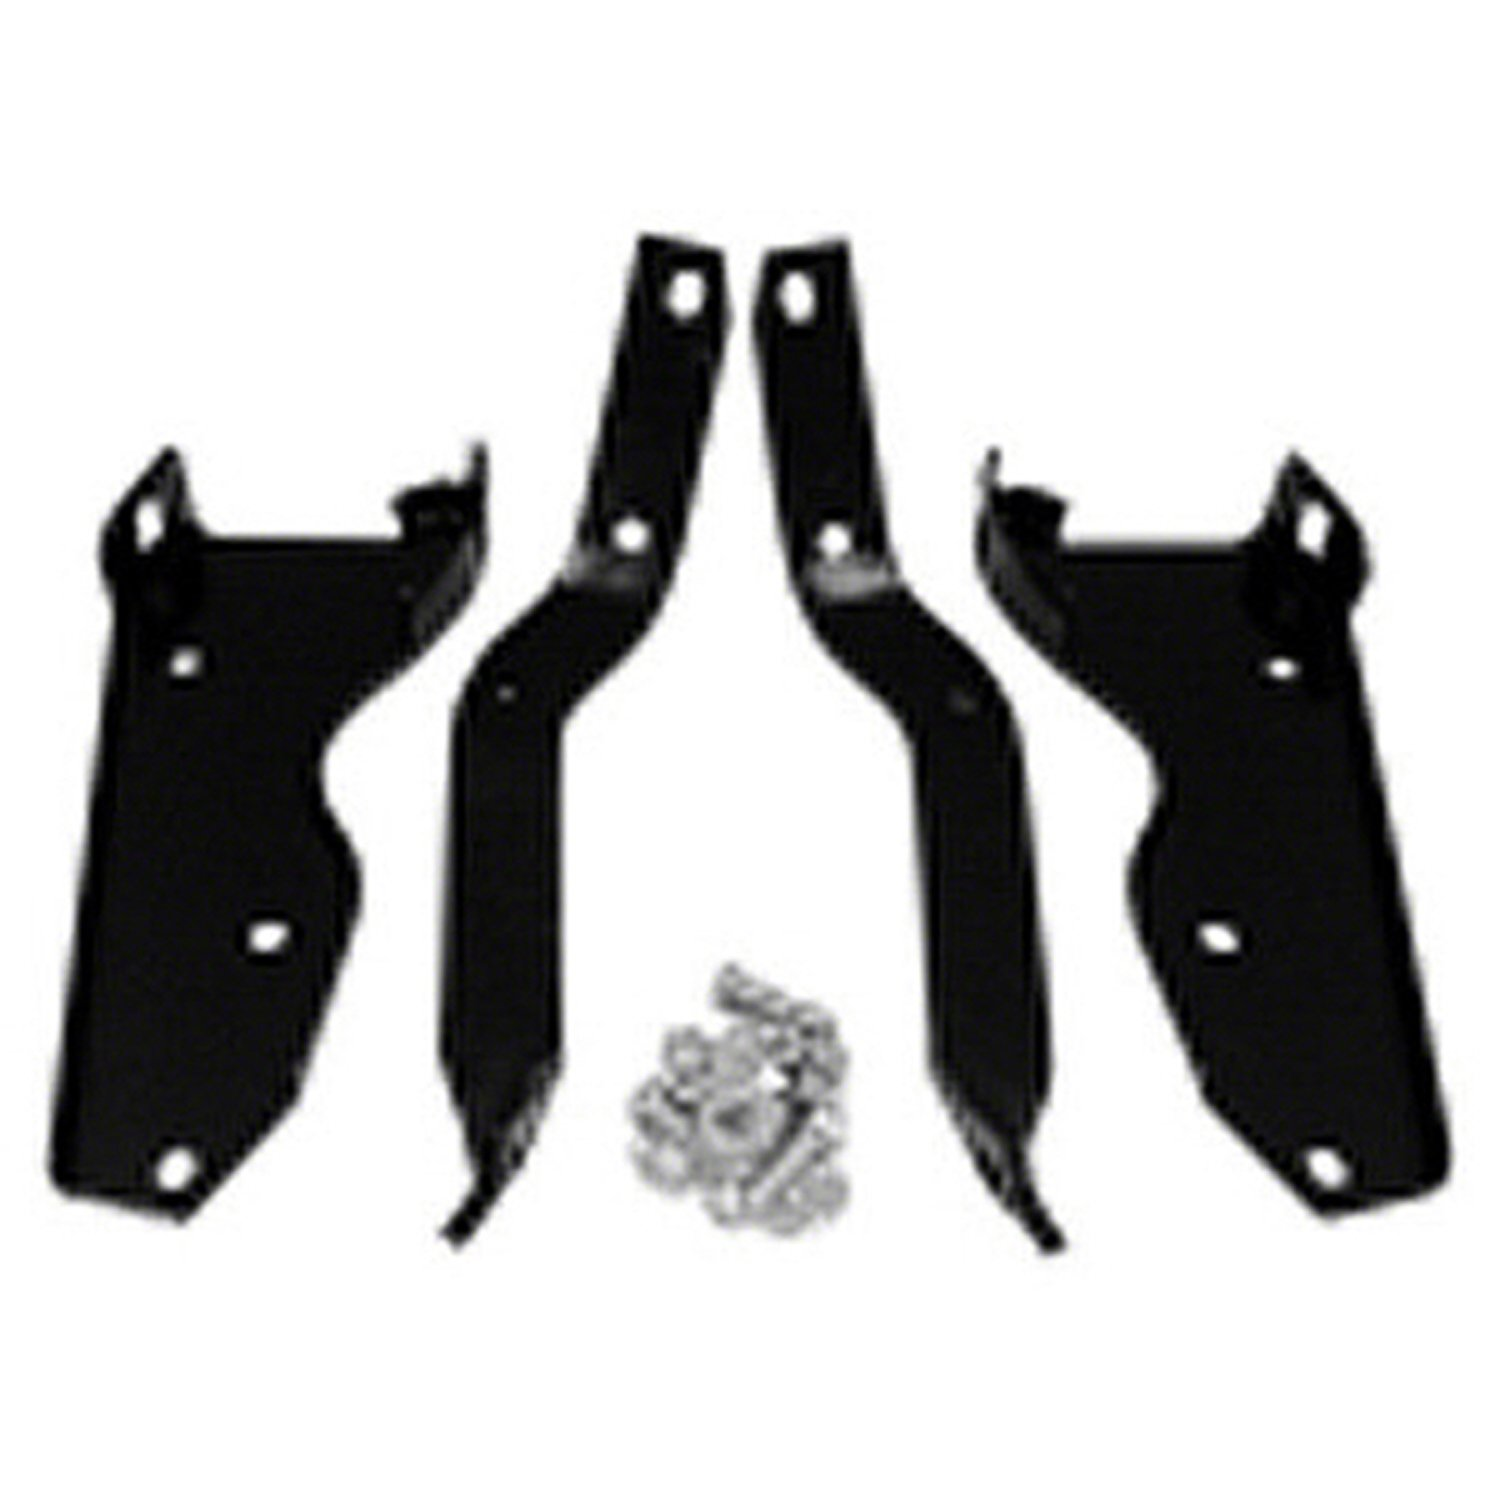 Goodmark Bumper Mounting Bracket for 64-72 Ford F-100, F-250, F-350